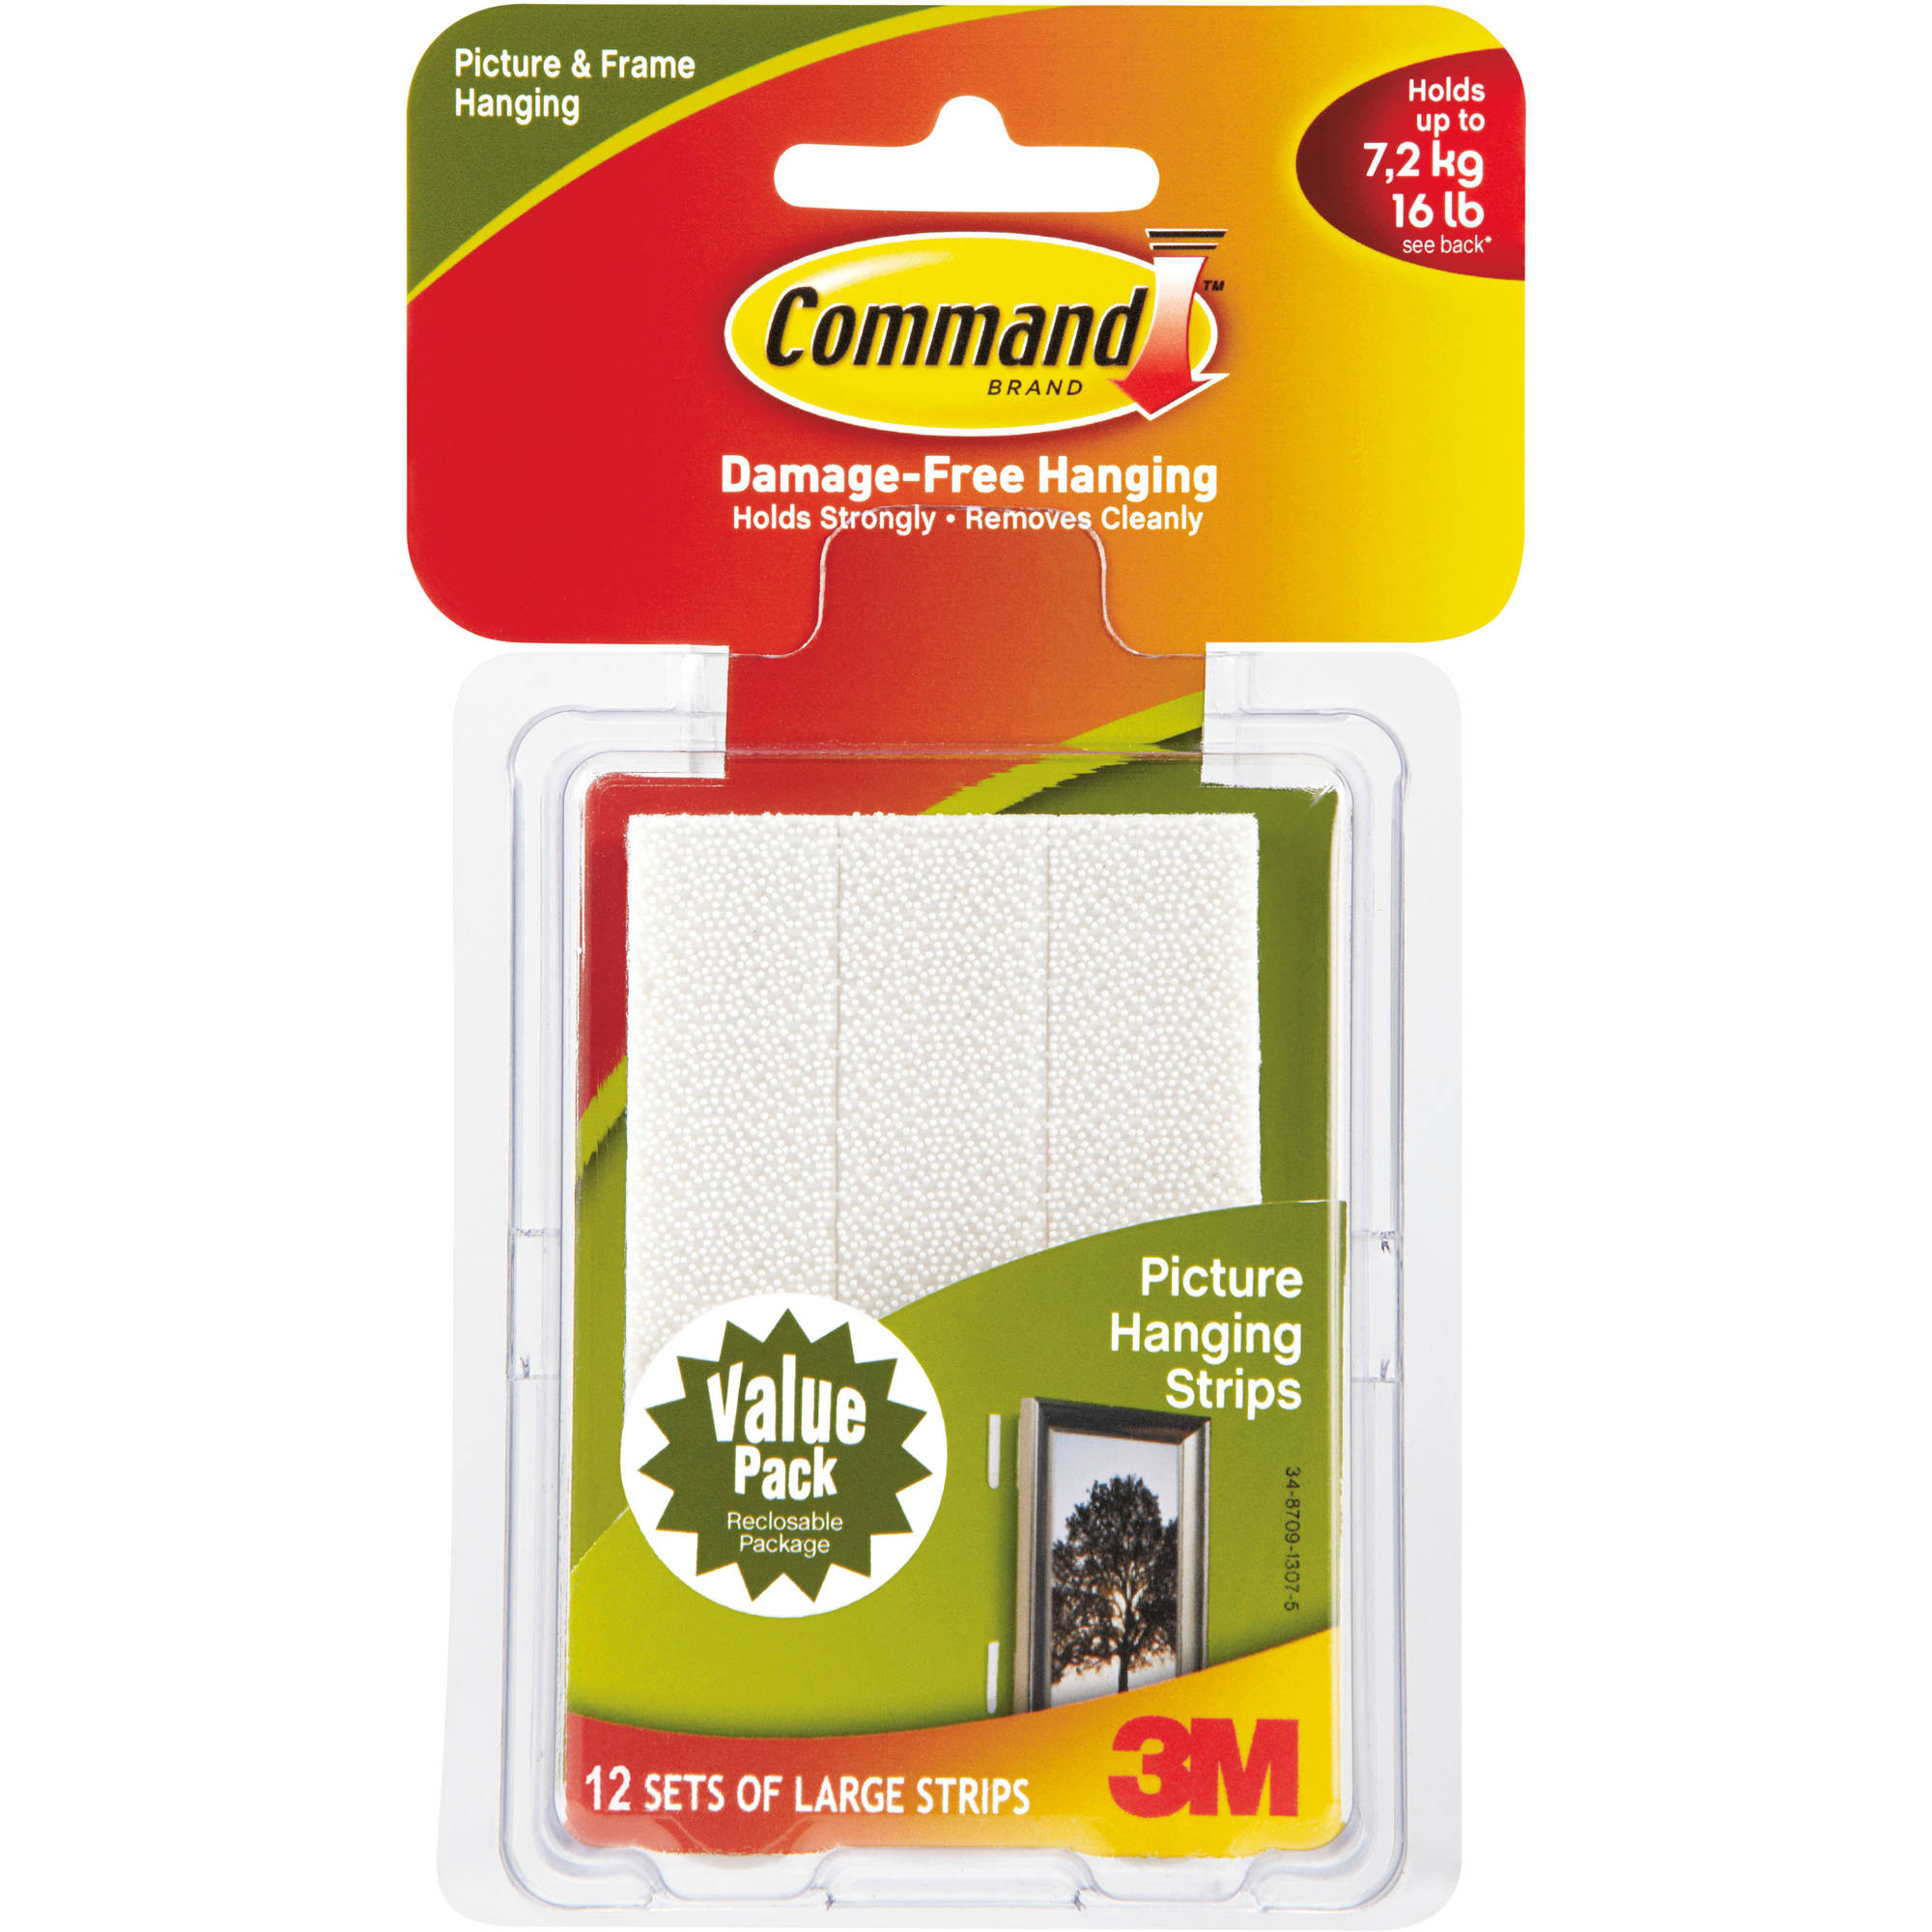 Command Large Picture Hanging Strips, White, 12 Sets of Strips, 17206VP-XL